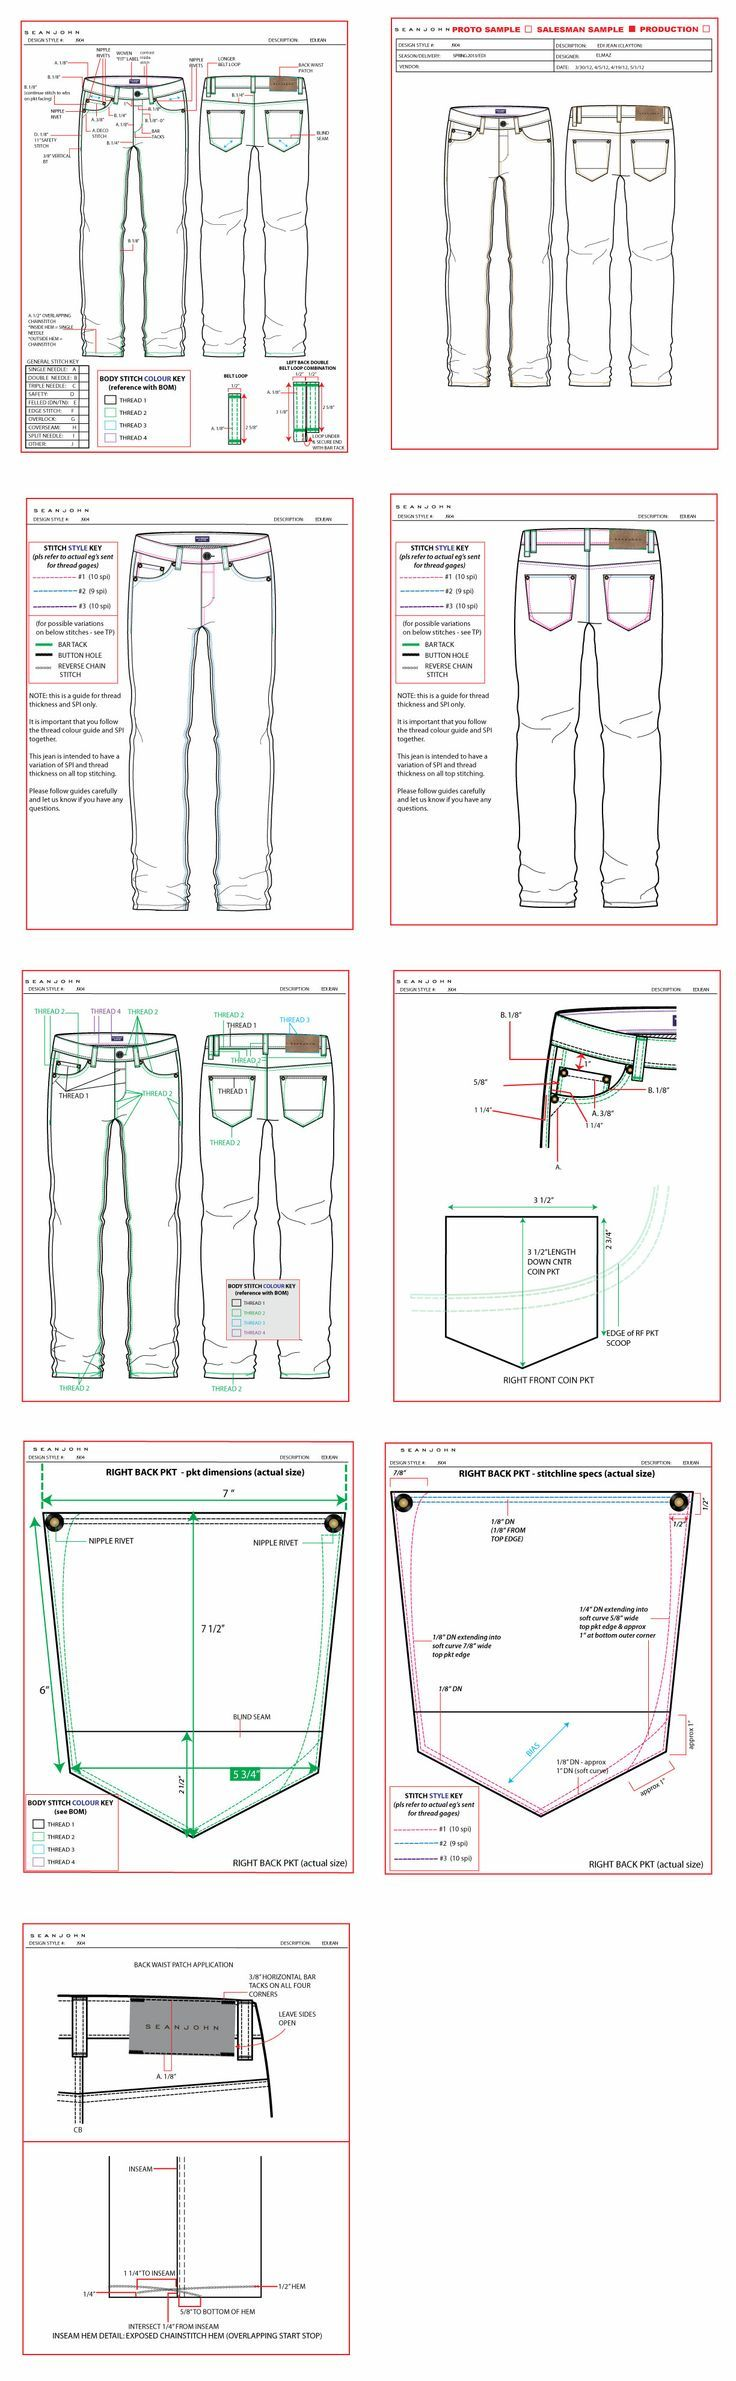 Good jeans illustrations: